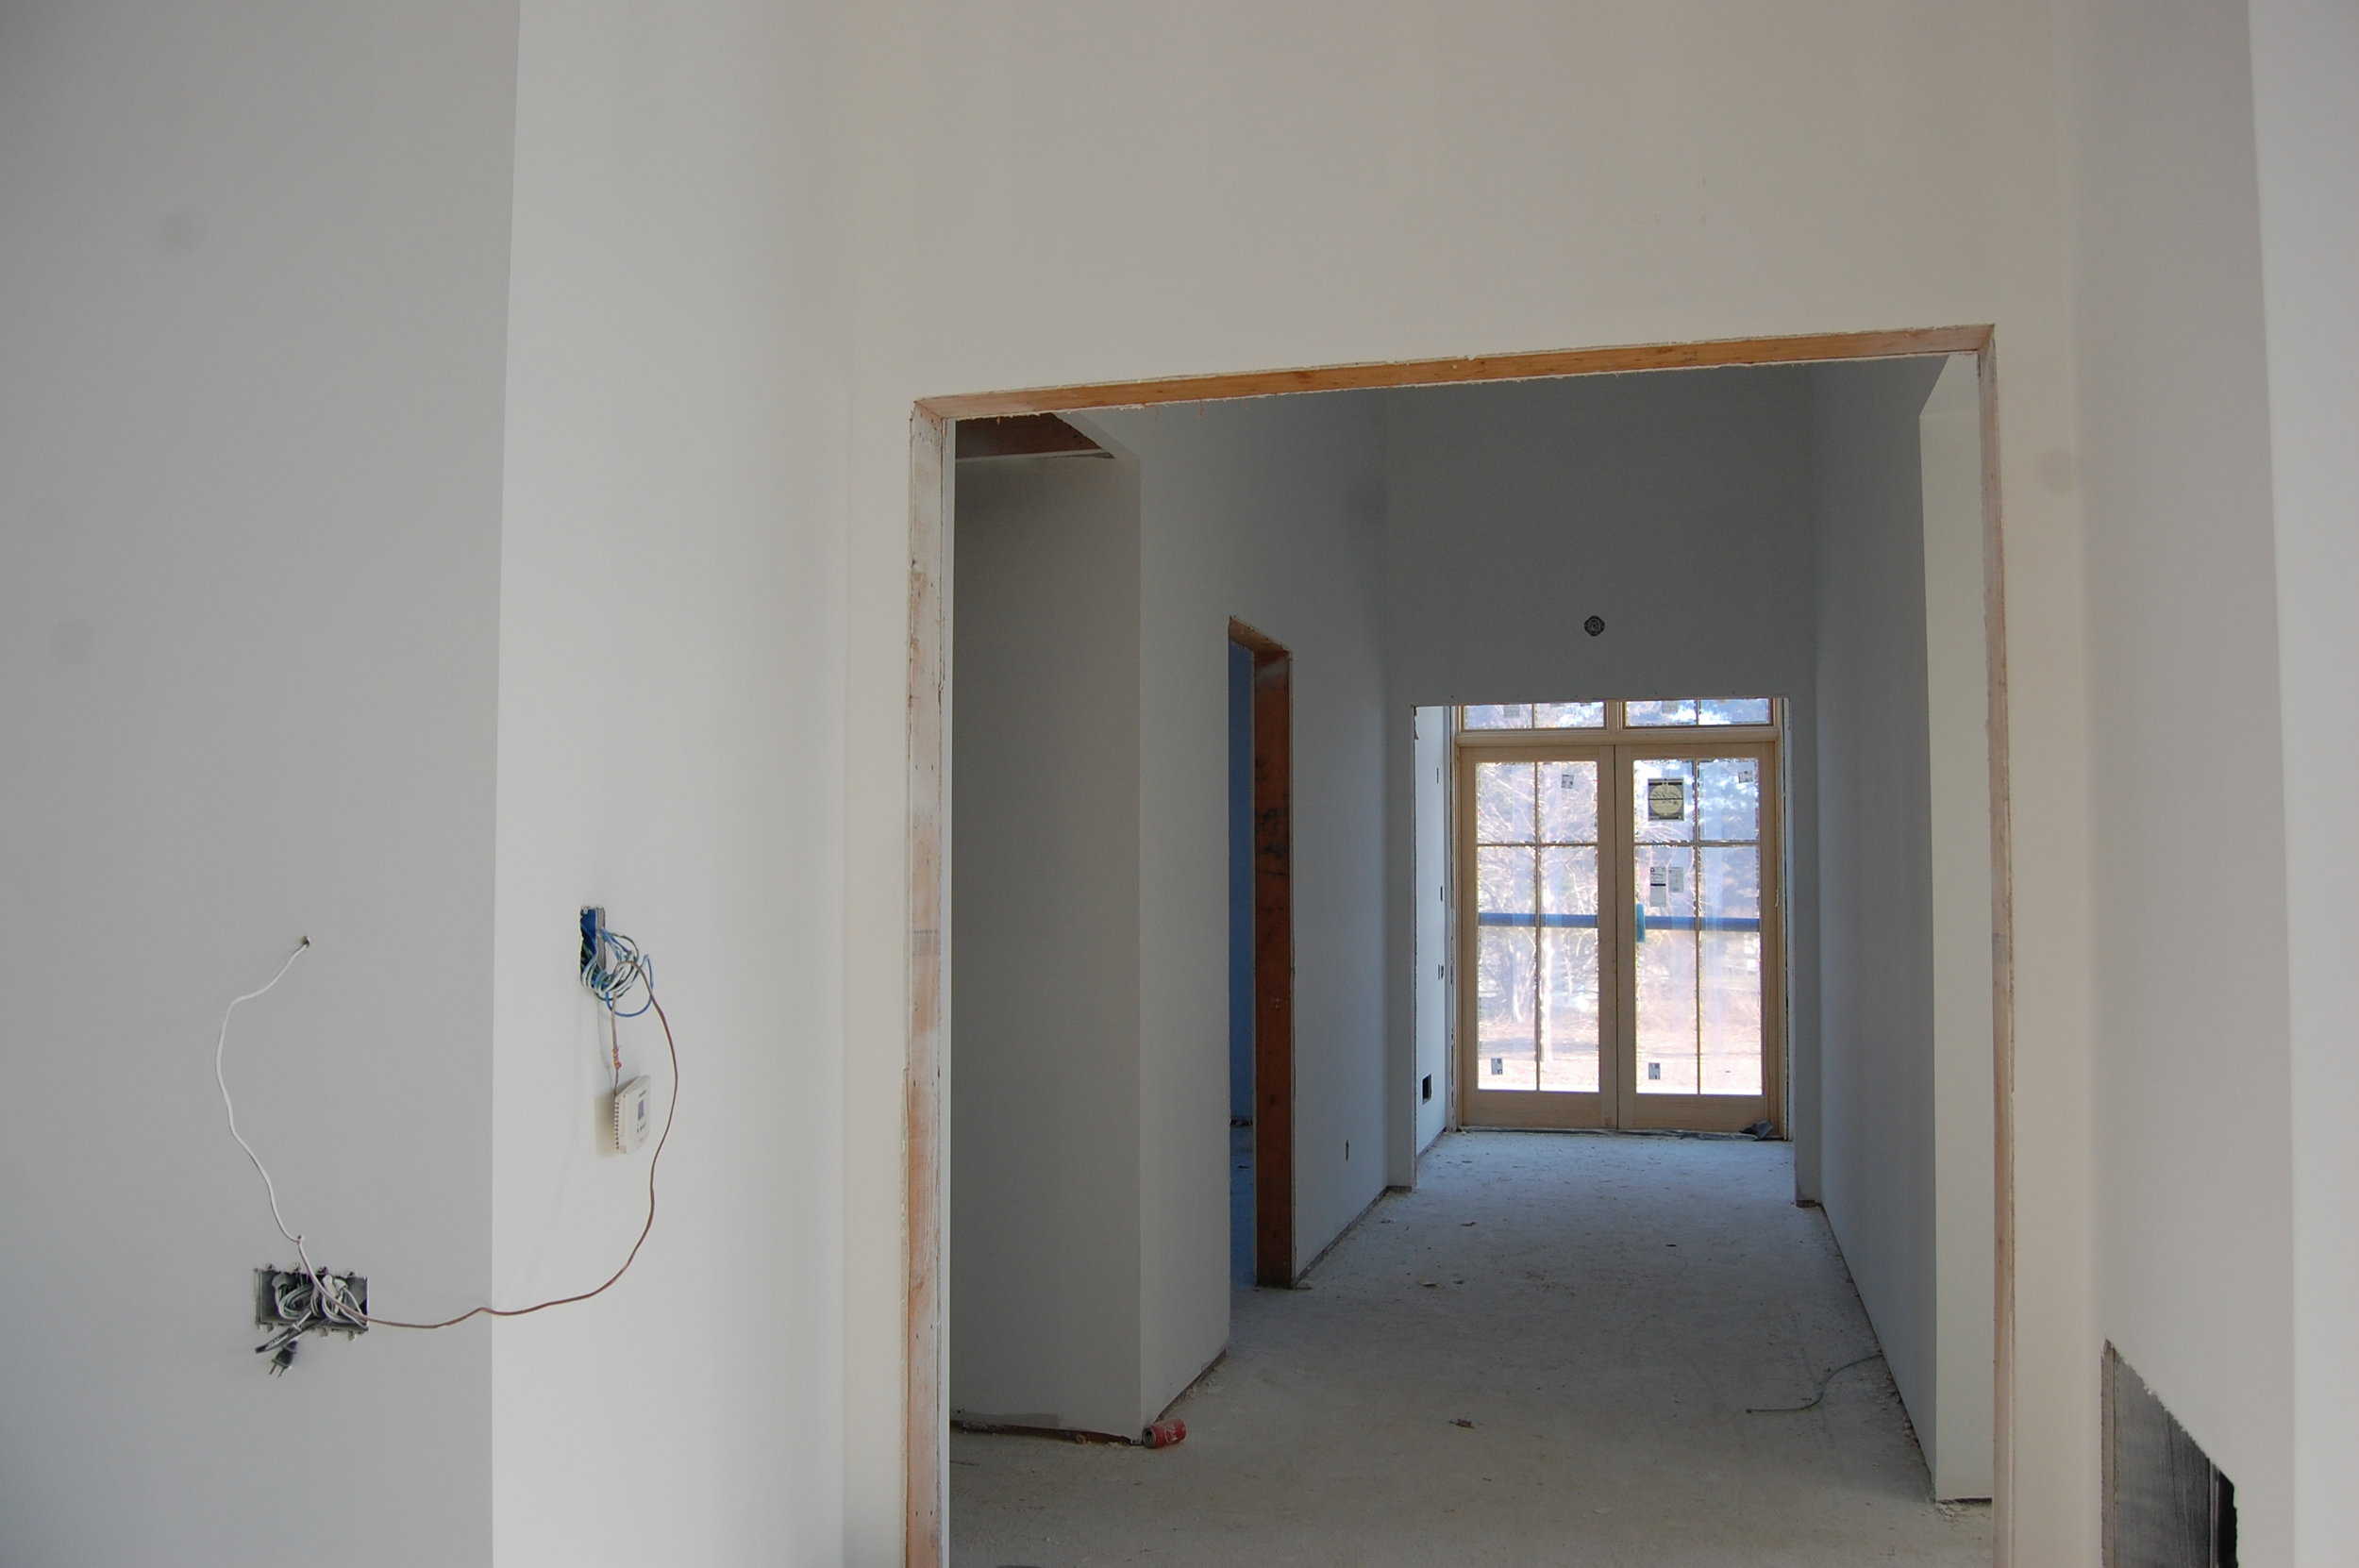 Hallway to Classrooms from the Large Function Hall